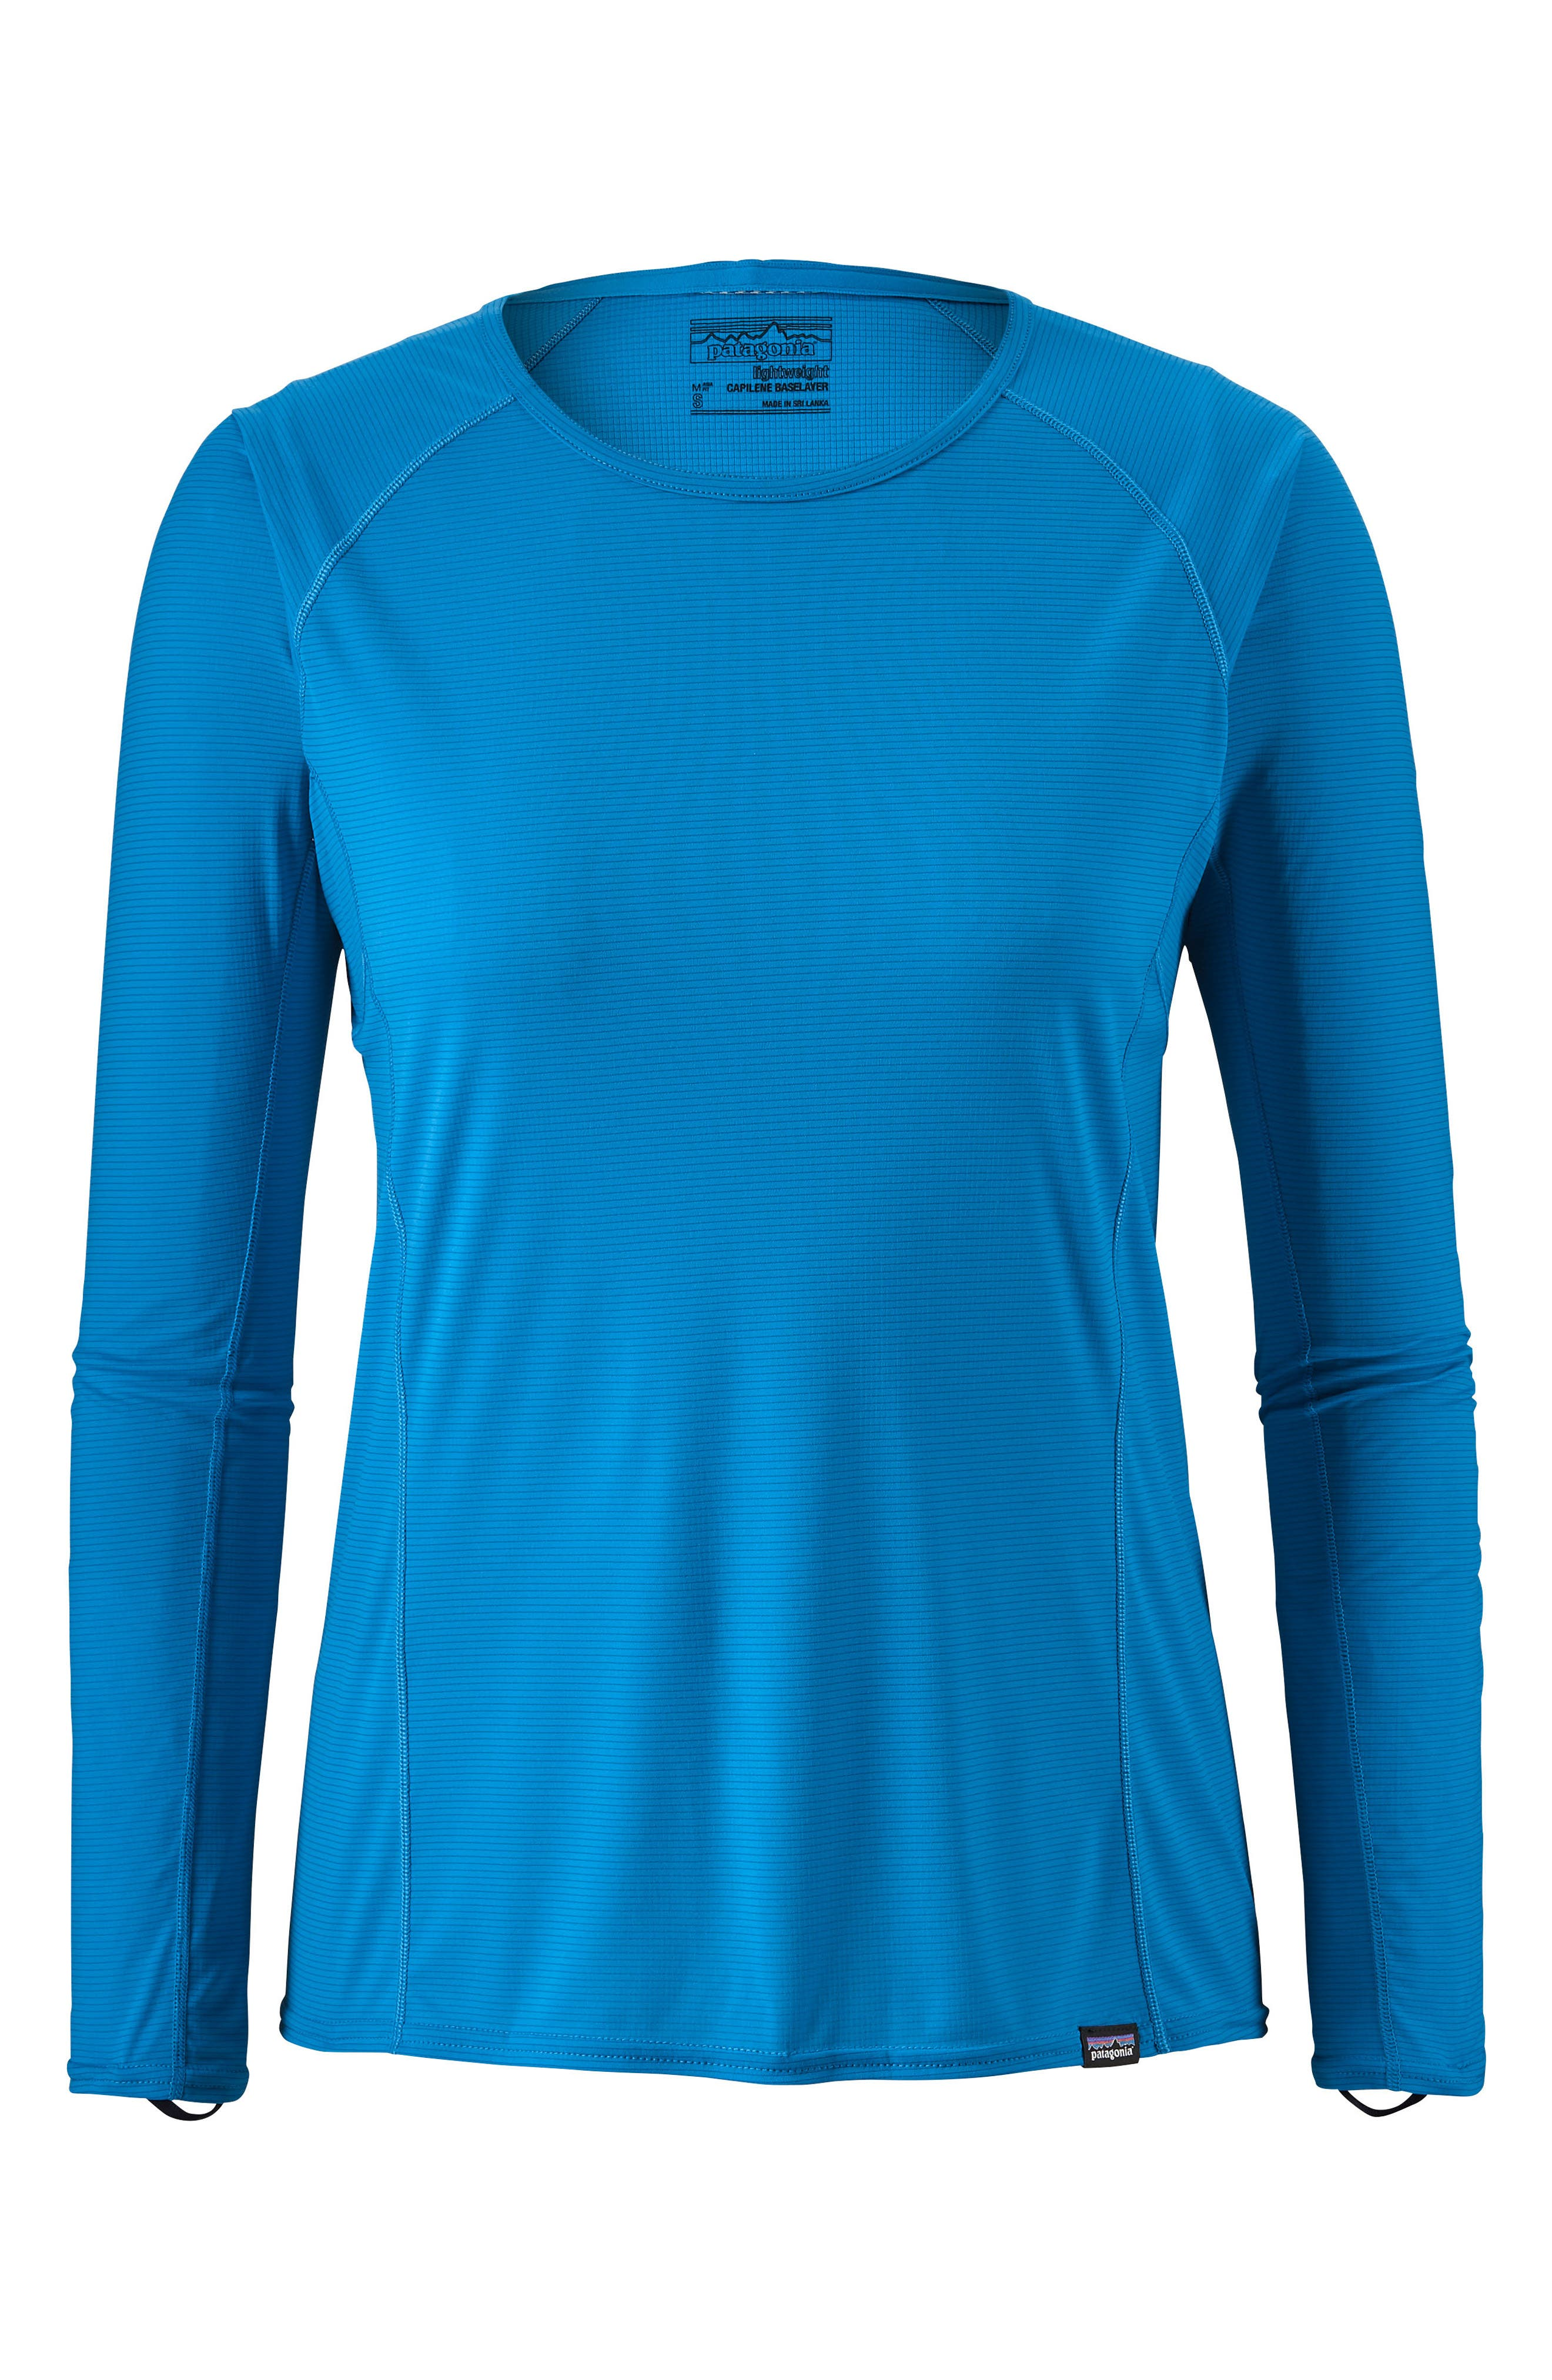 Capilene<sup>®</sup> Thermal Weight Long-Sleeve Tee,                         Main,                         color, LAPIZ BLUE